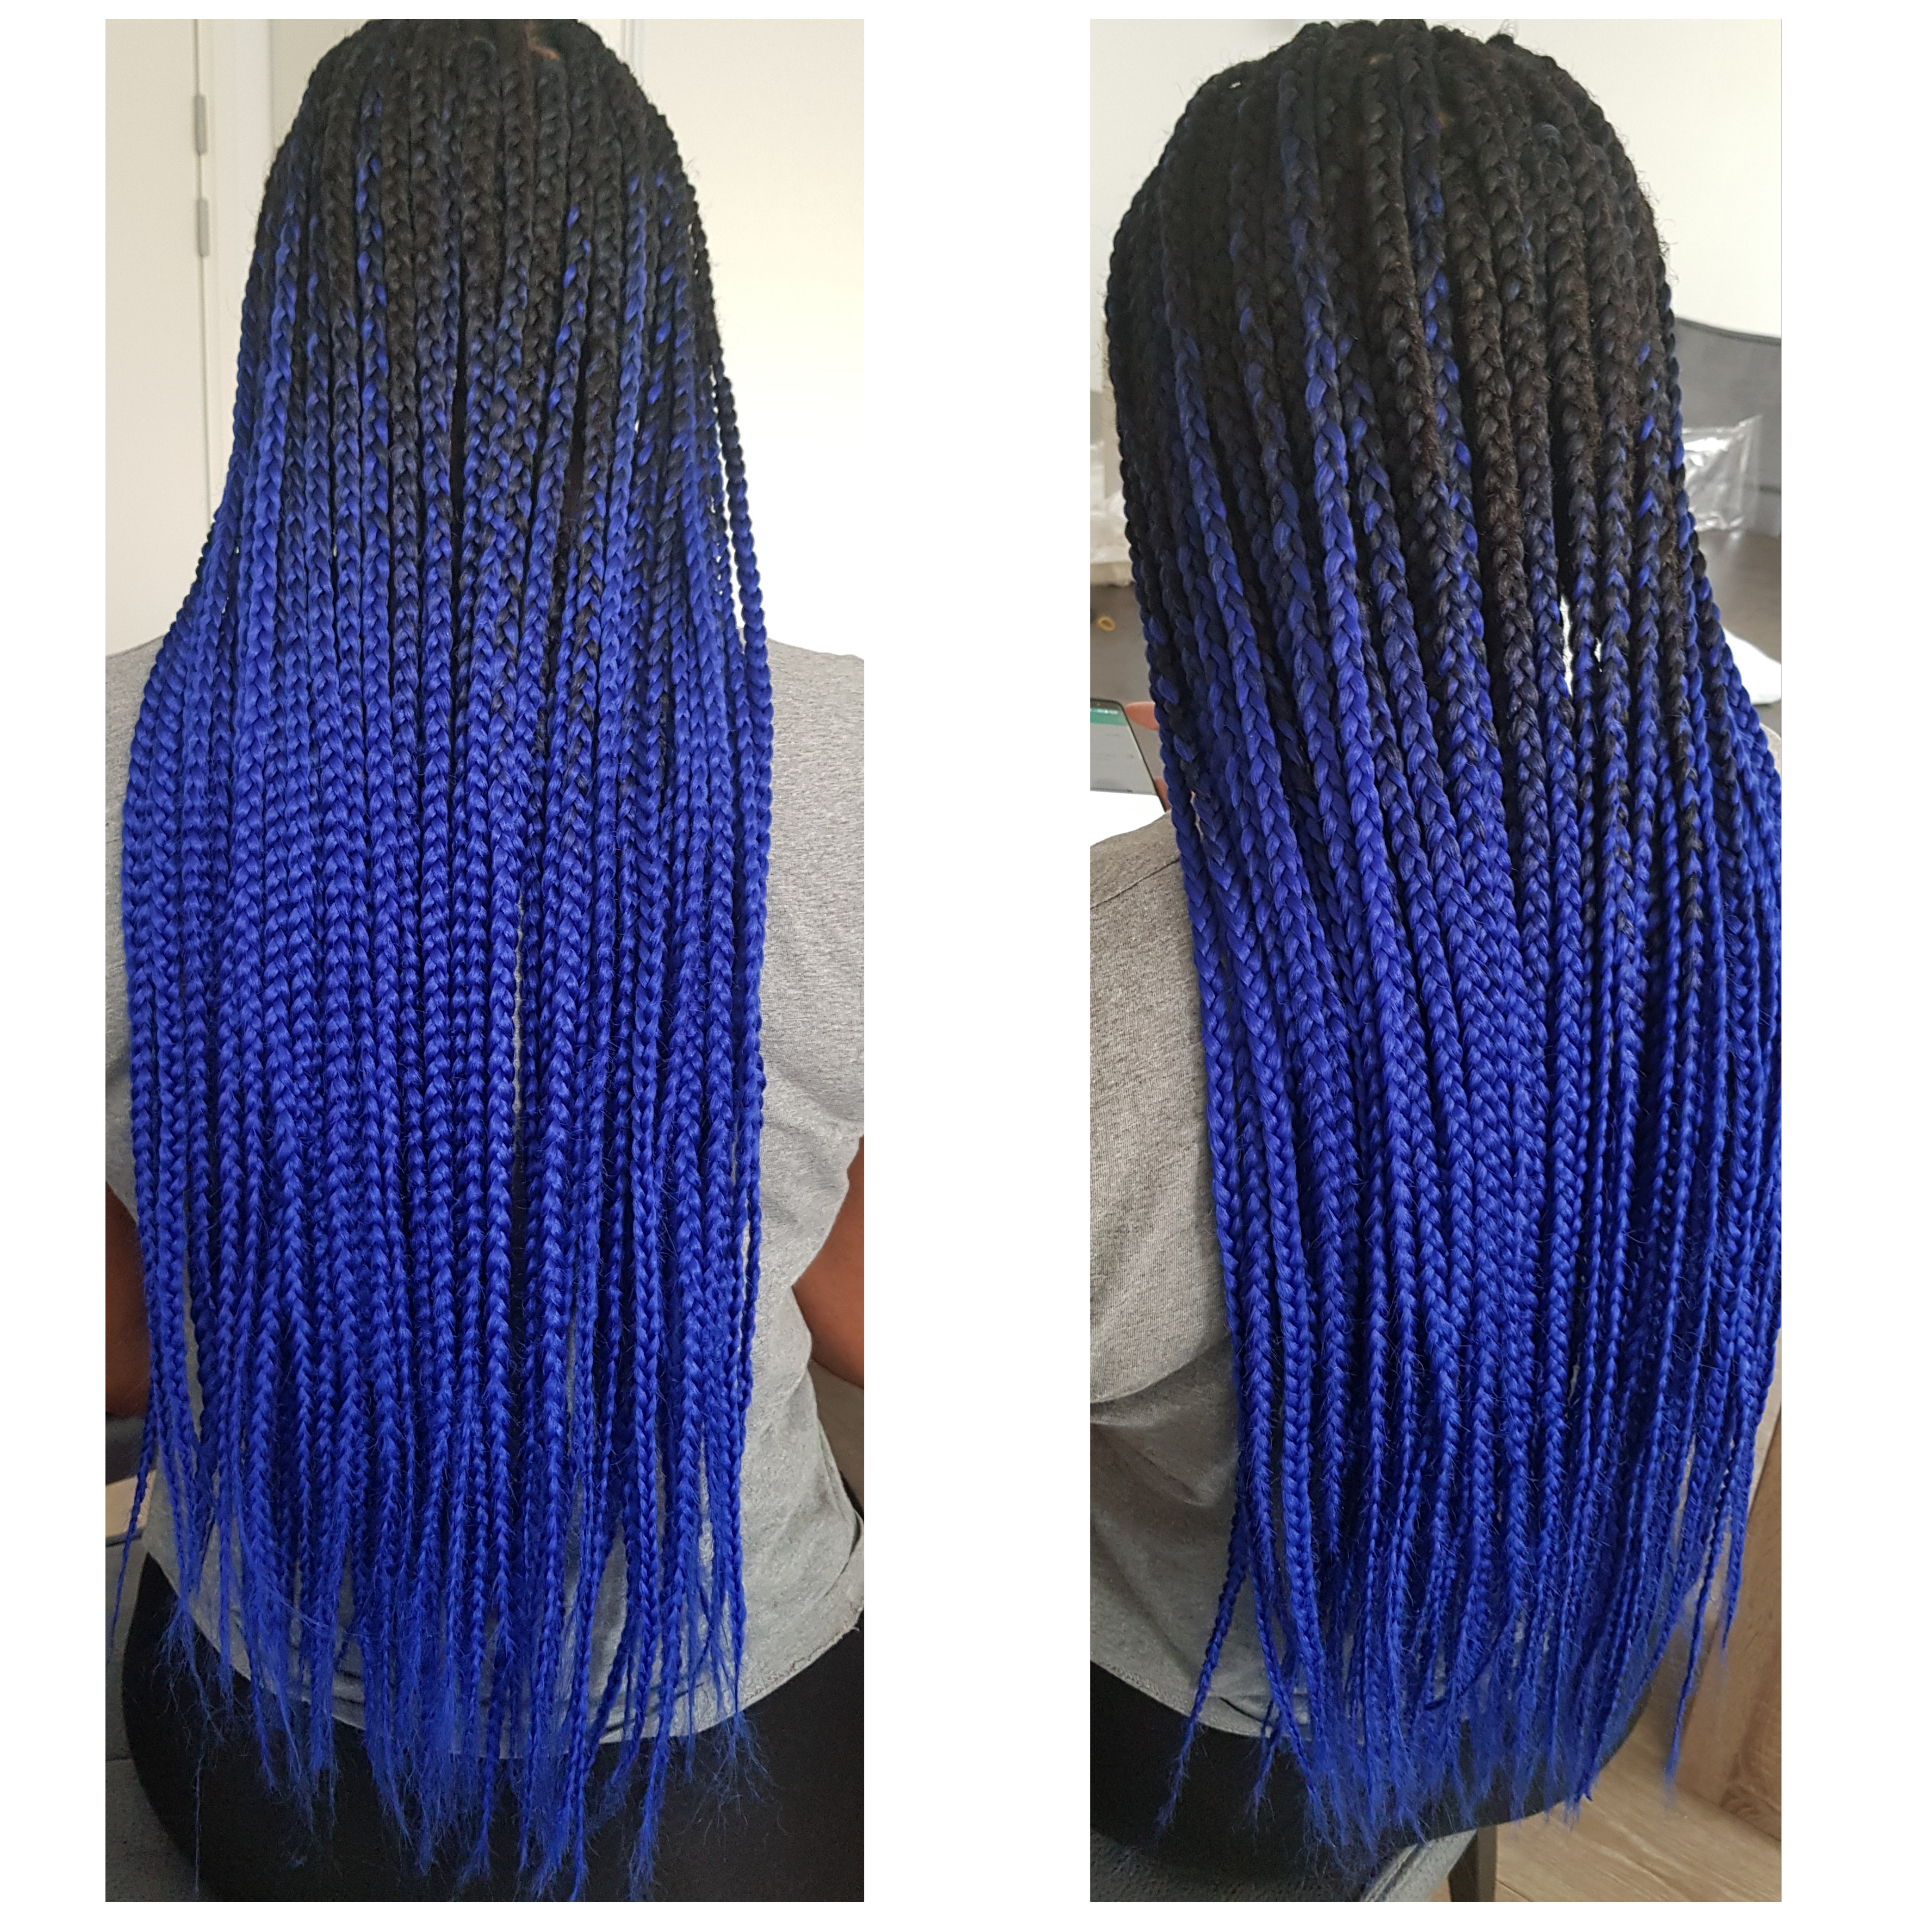 salon de coiffure afro tresse tresses box braids crochet braids vanilles tissages paris 75 77 78 91 92 93 94 95 ZXAQQVQY